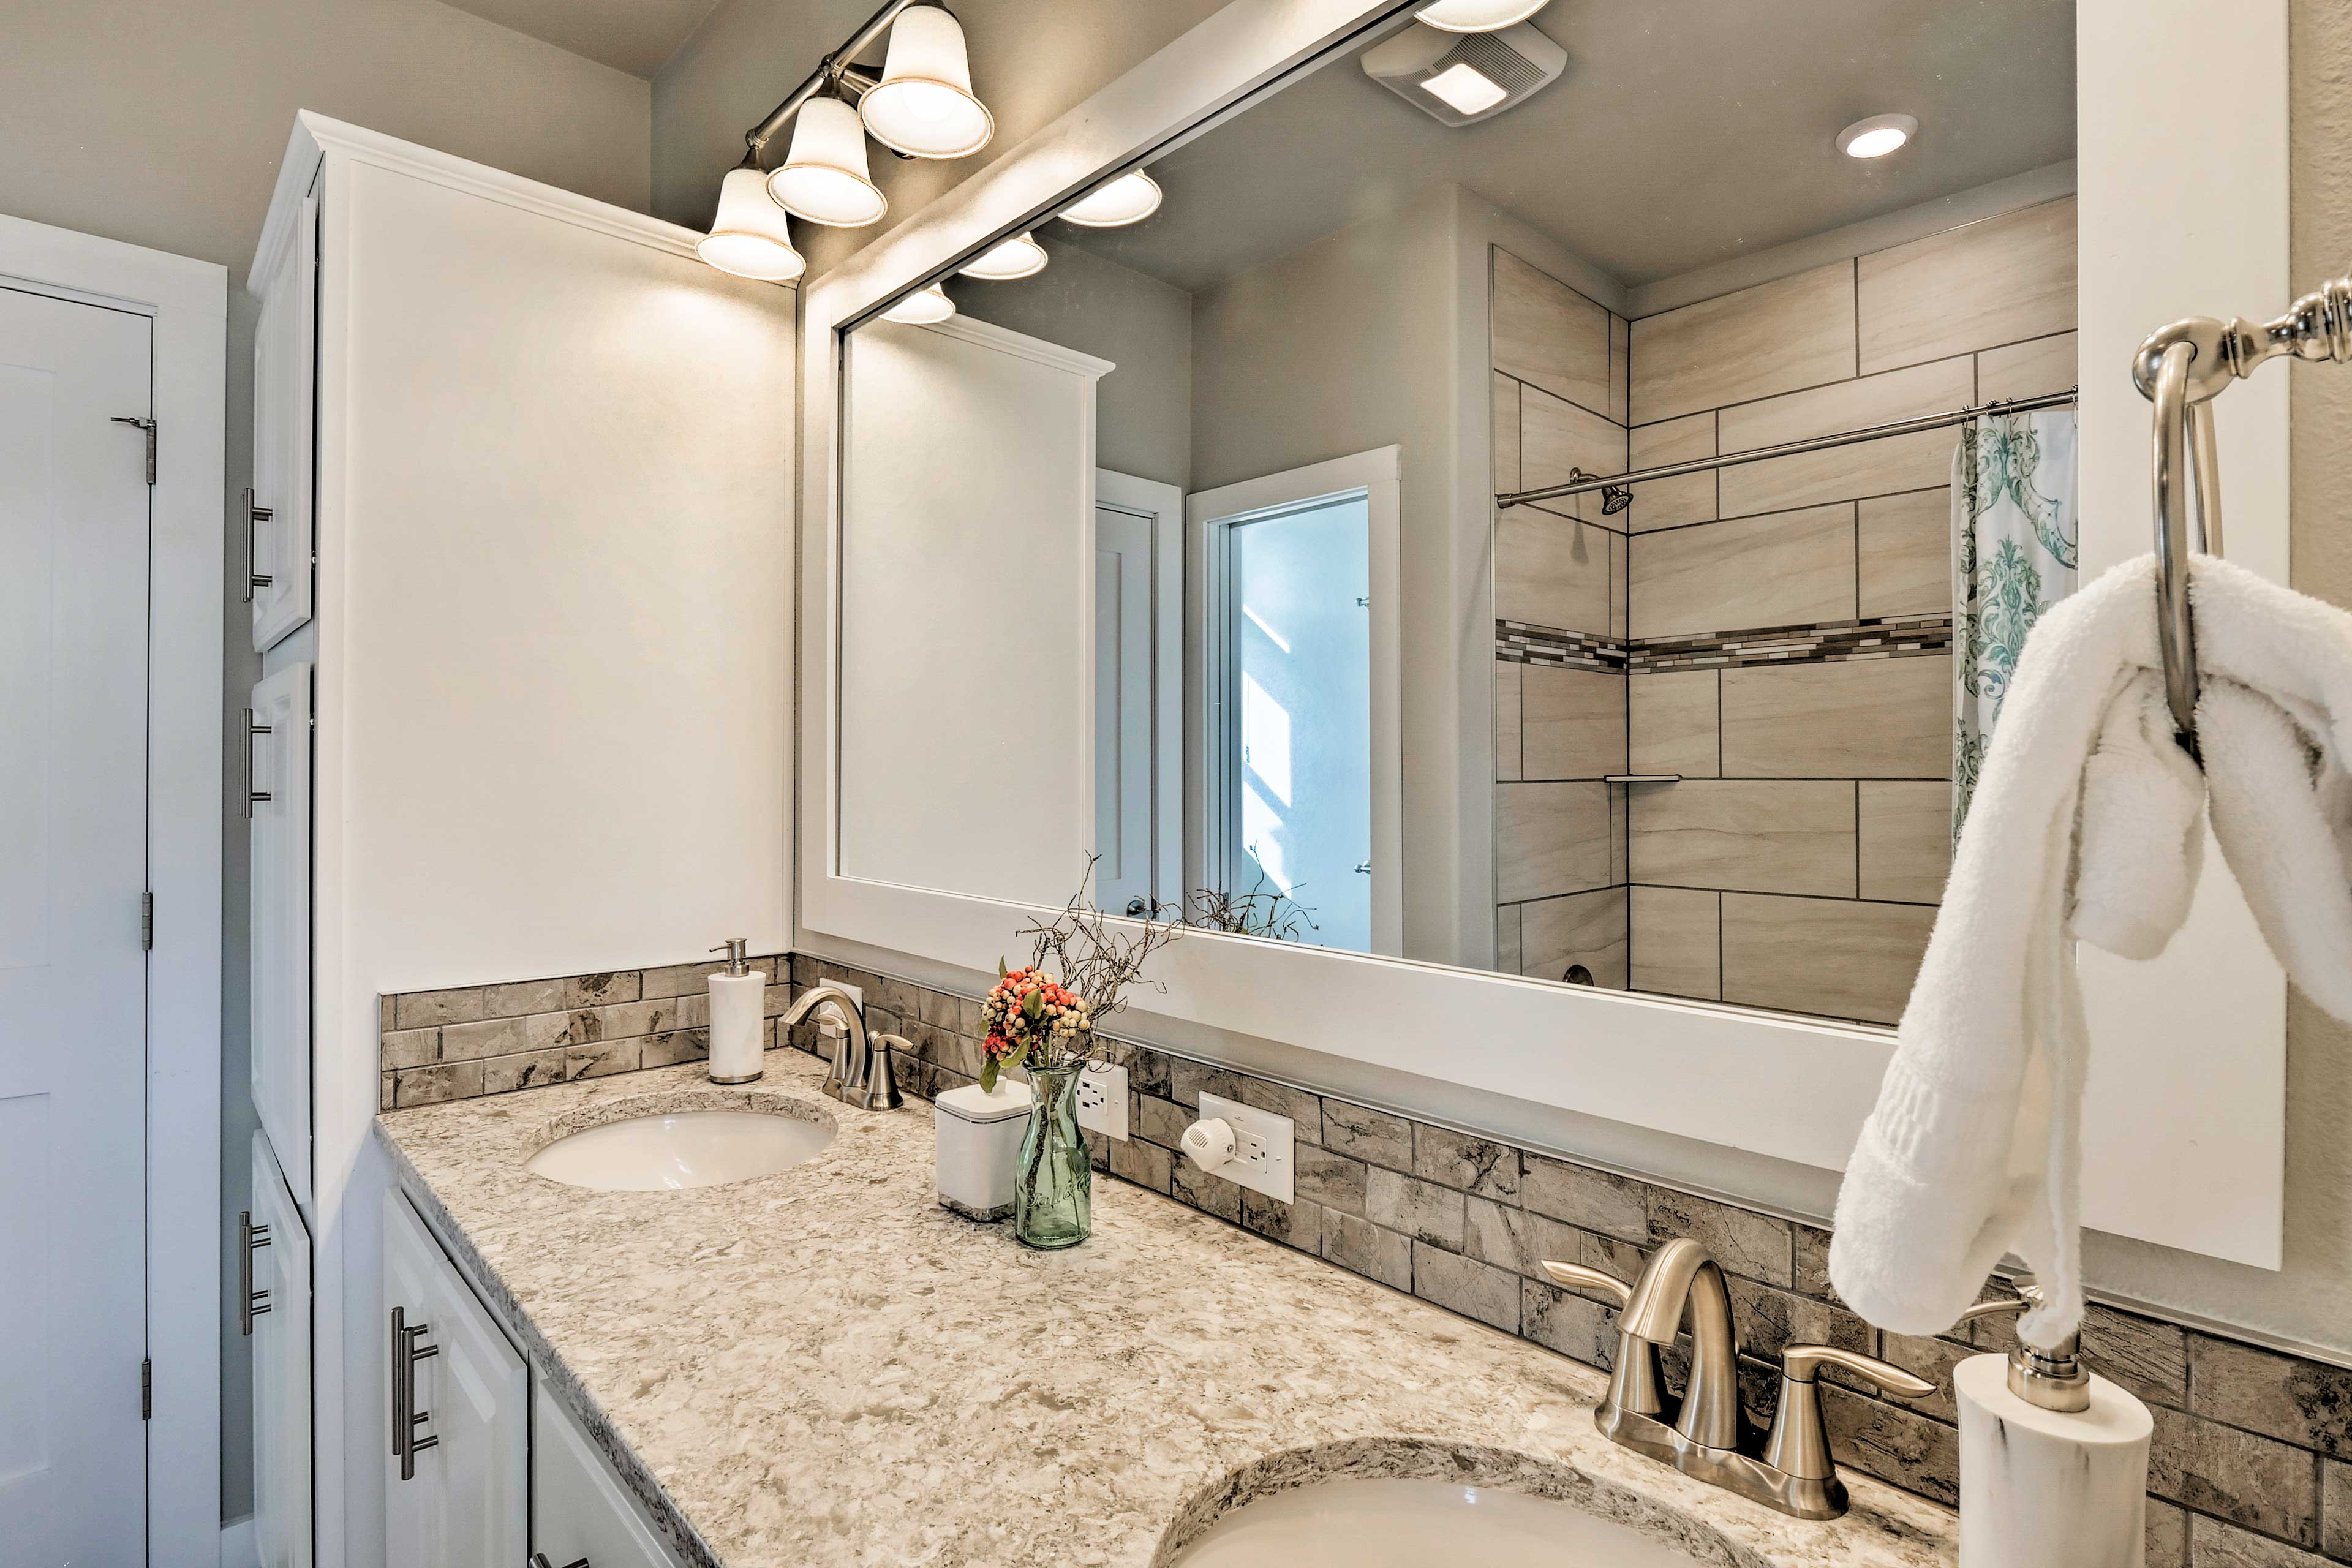 Enjoy a quick rinse in the shower or a long soak in the tub.